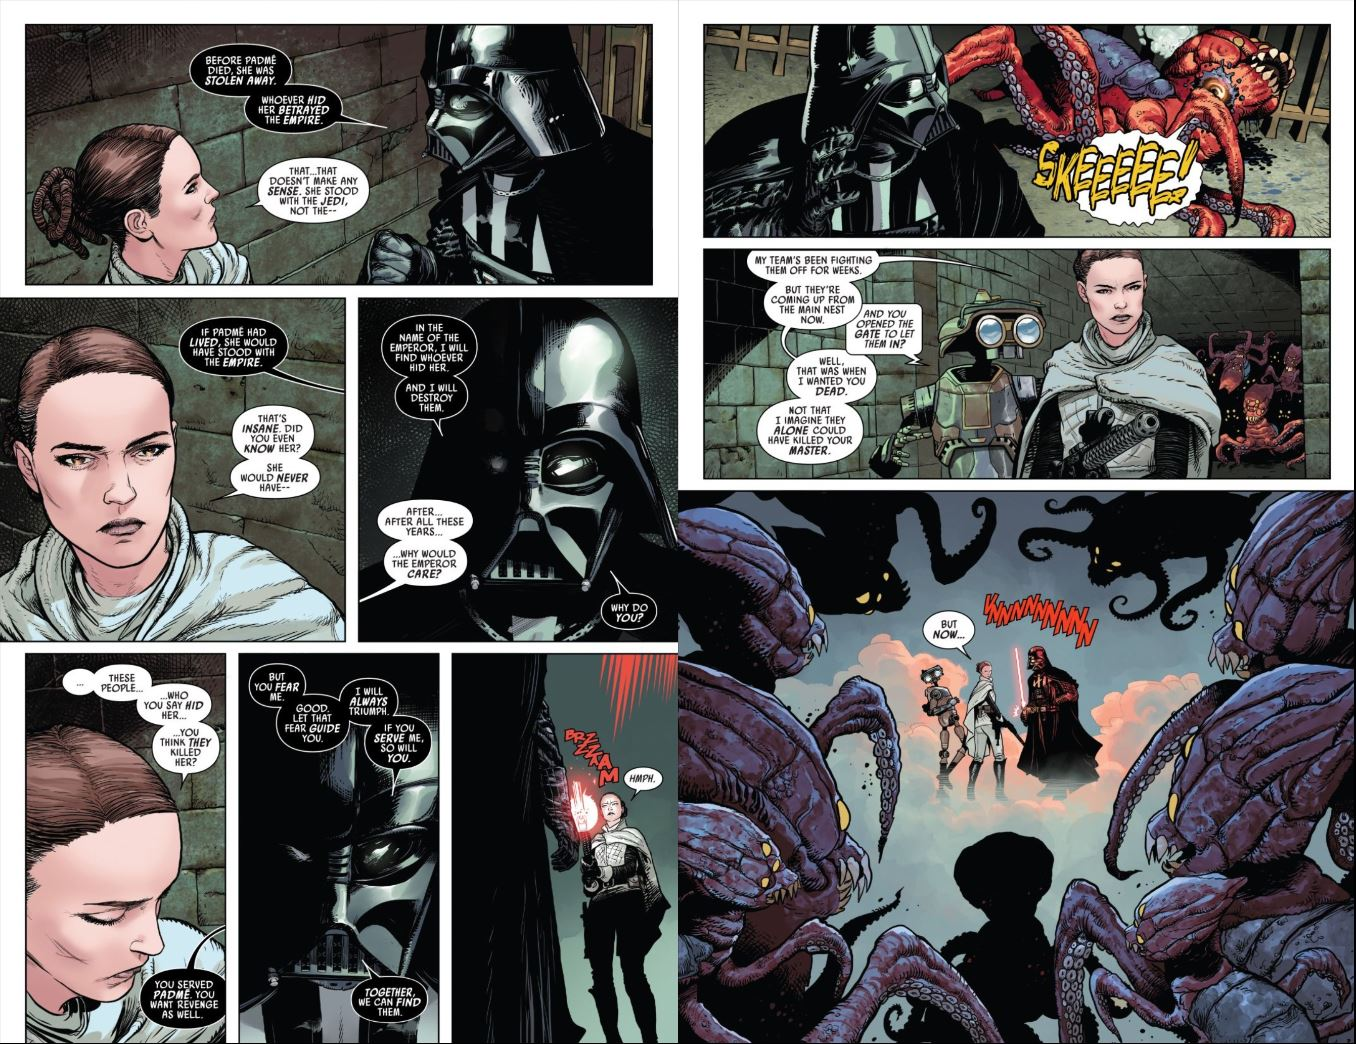 Review Issue 2 Star Wars Darth Vader (2020) - Vader makes a deal with Sabe